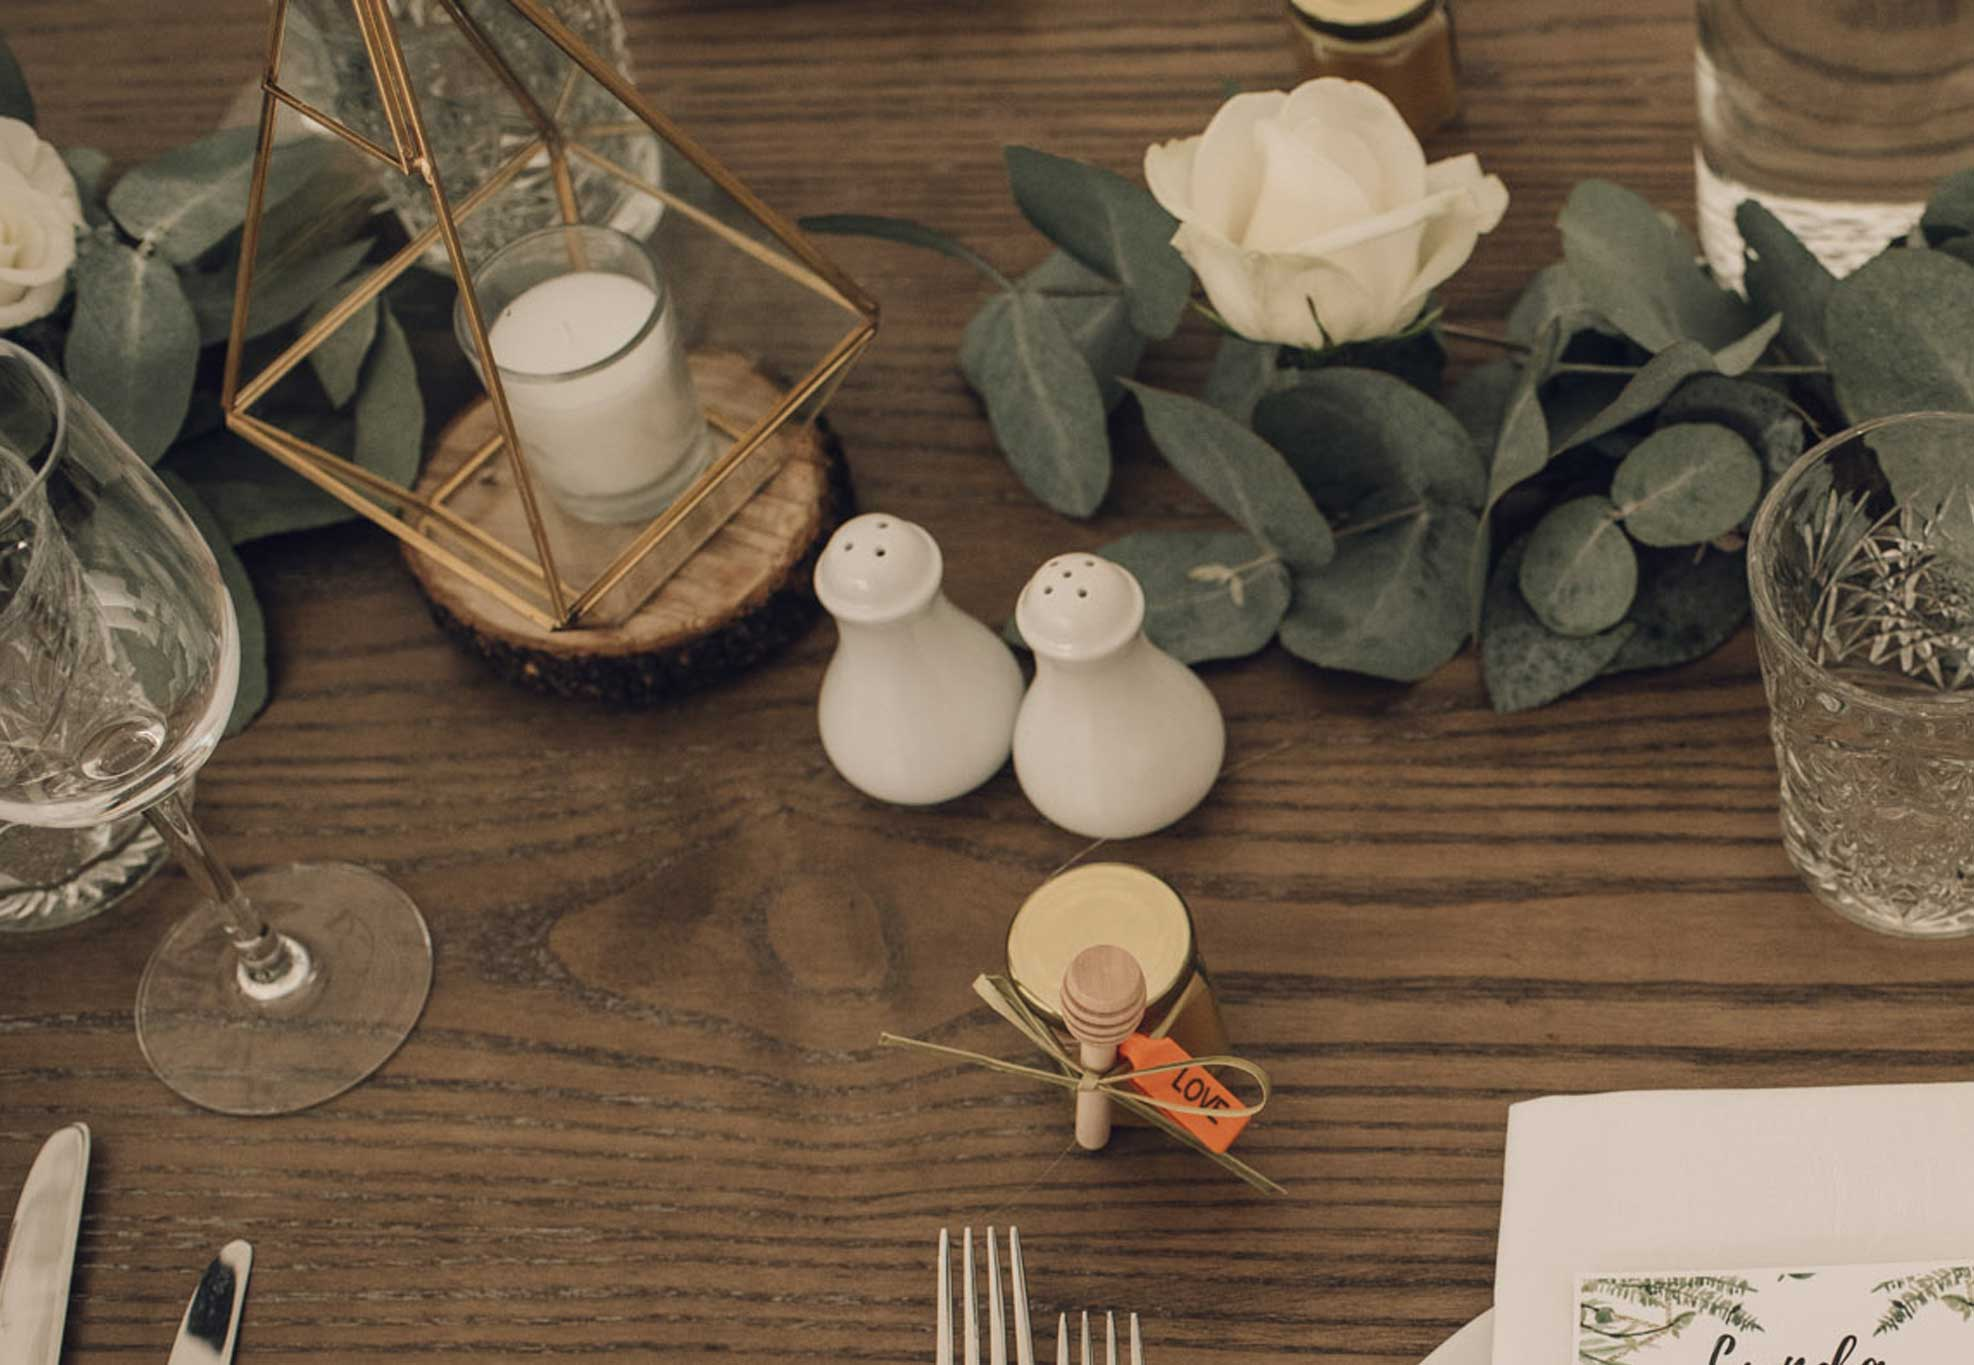 silk-estate-marquee-weddings-and-events-styling-and-hire-crockery-salt-and-pepper